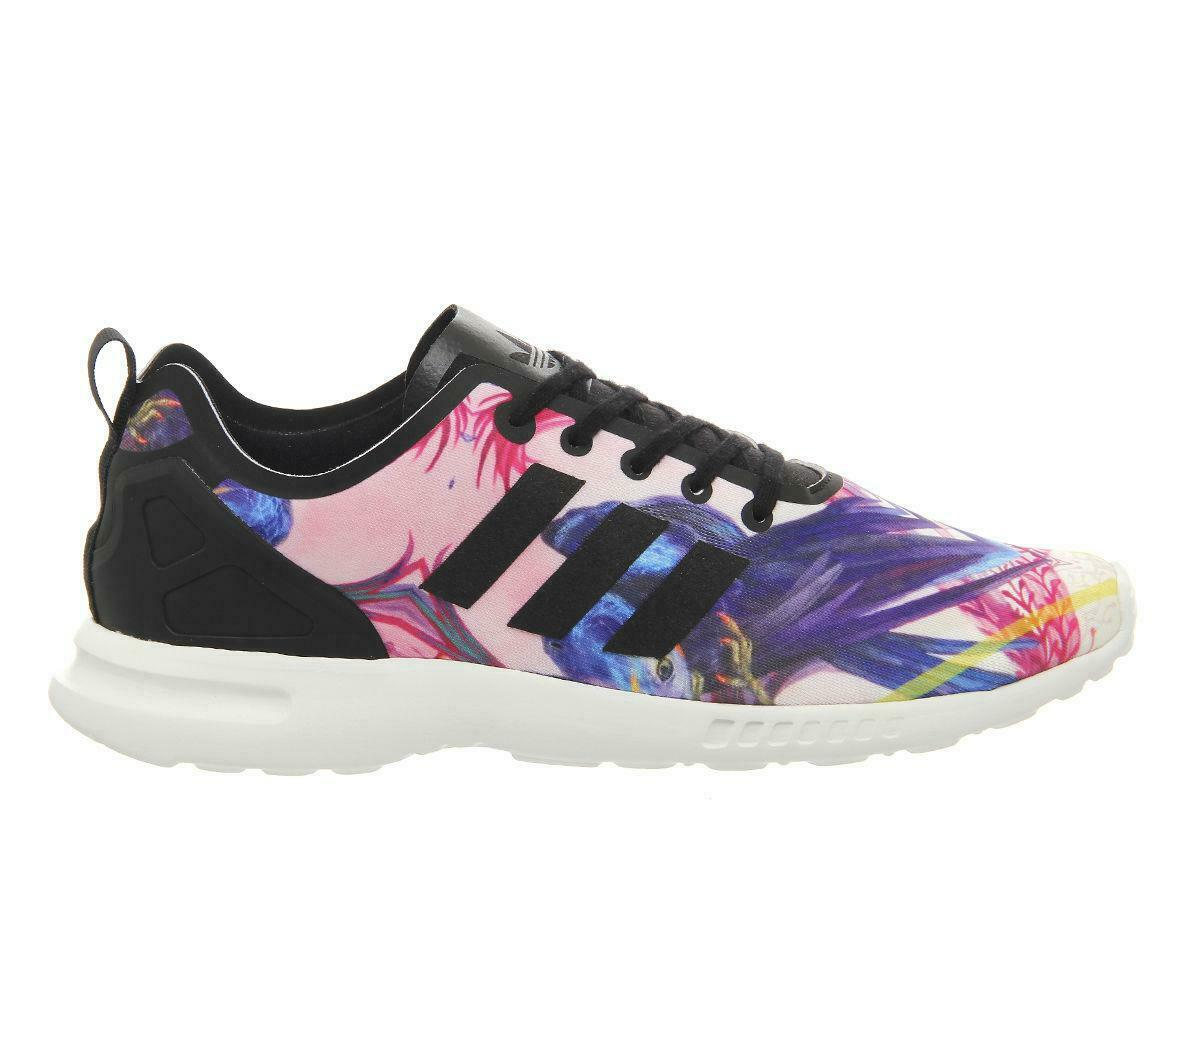 Womens Adidas ZX Flux Smooth Flore Low Trainers S82937